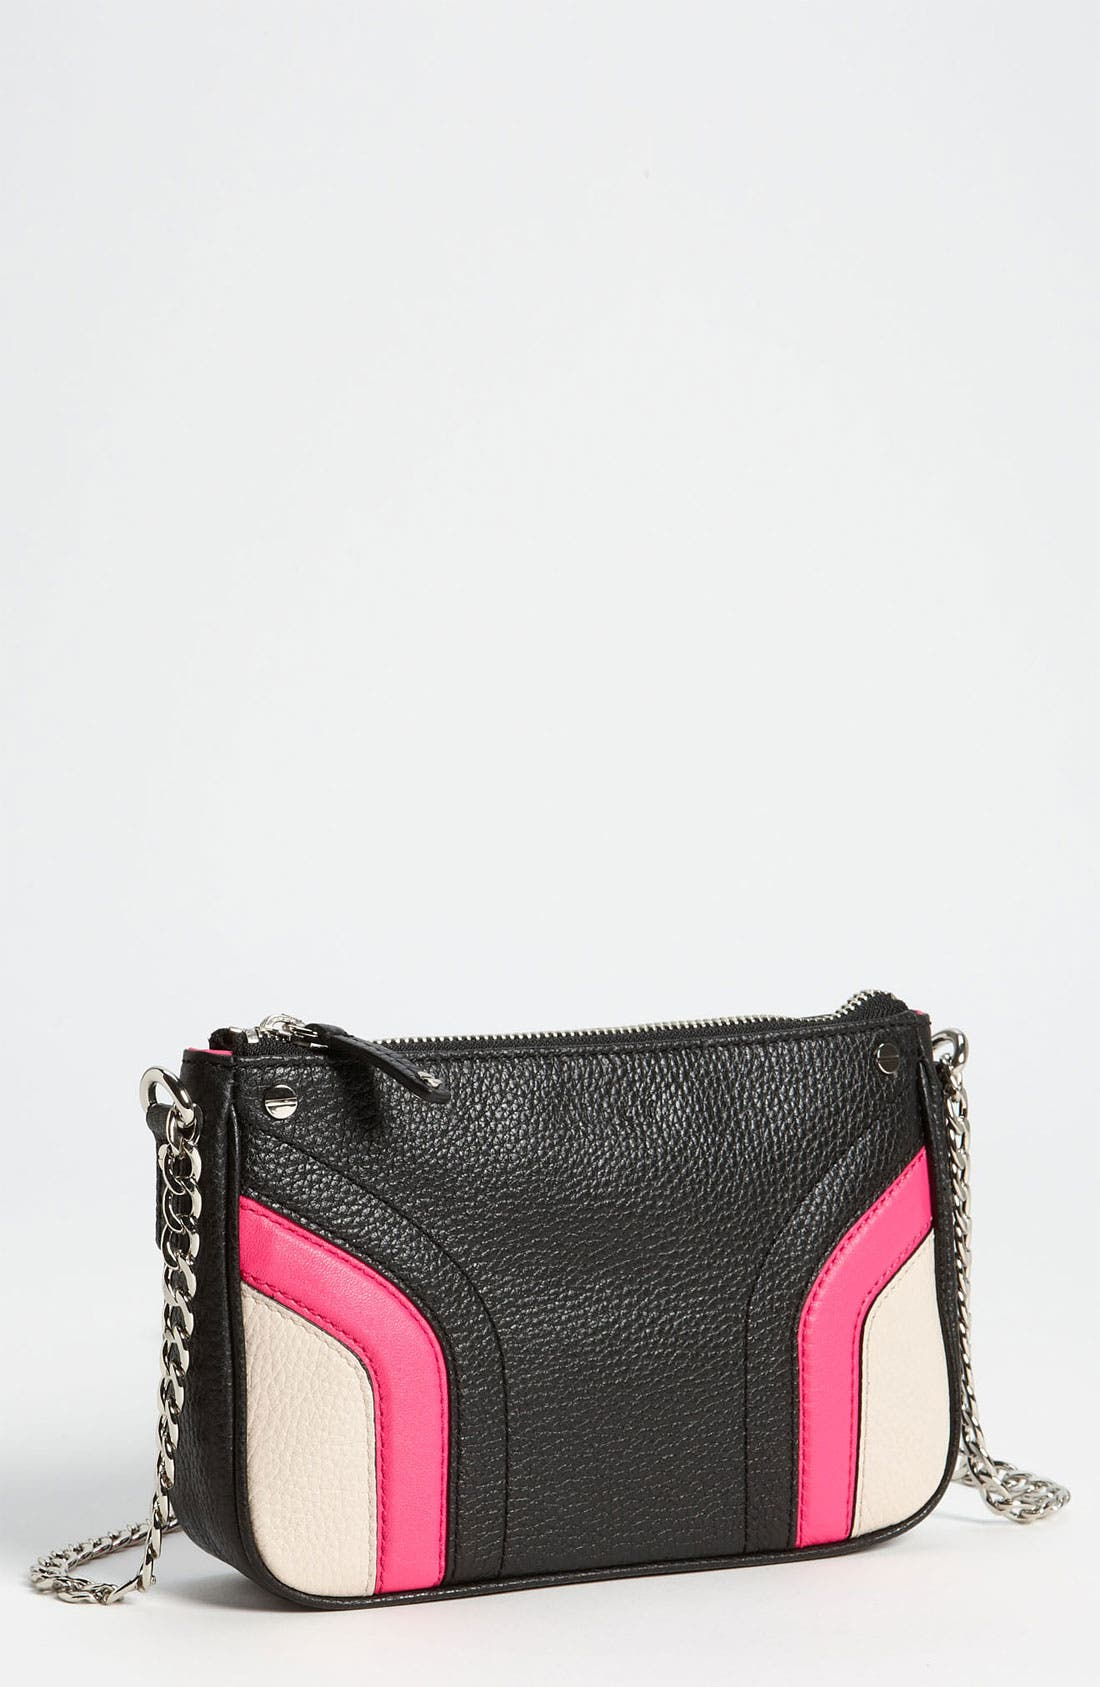 Main Image - Milly 'Zoey' Crossbody Bag